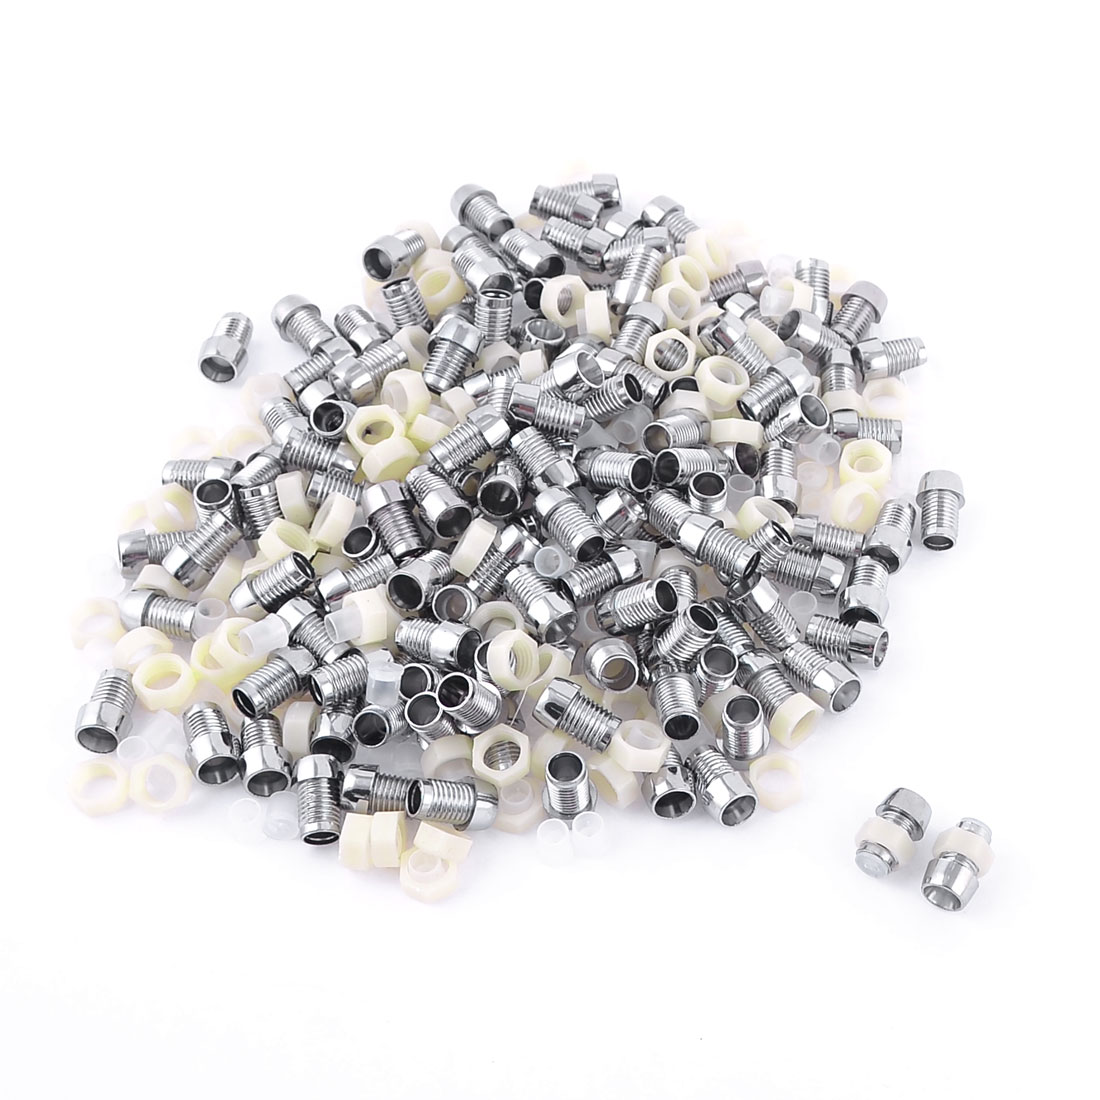 150Pcs 5mm Metal Silver Tone LED Lamp Holder for Light-emitting Diode Lighting